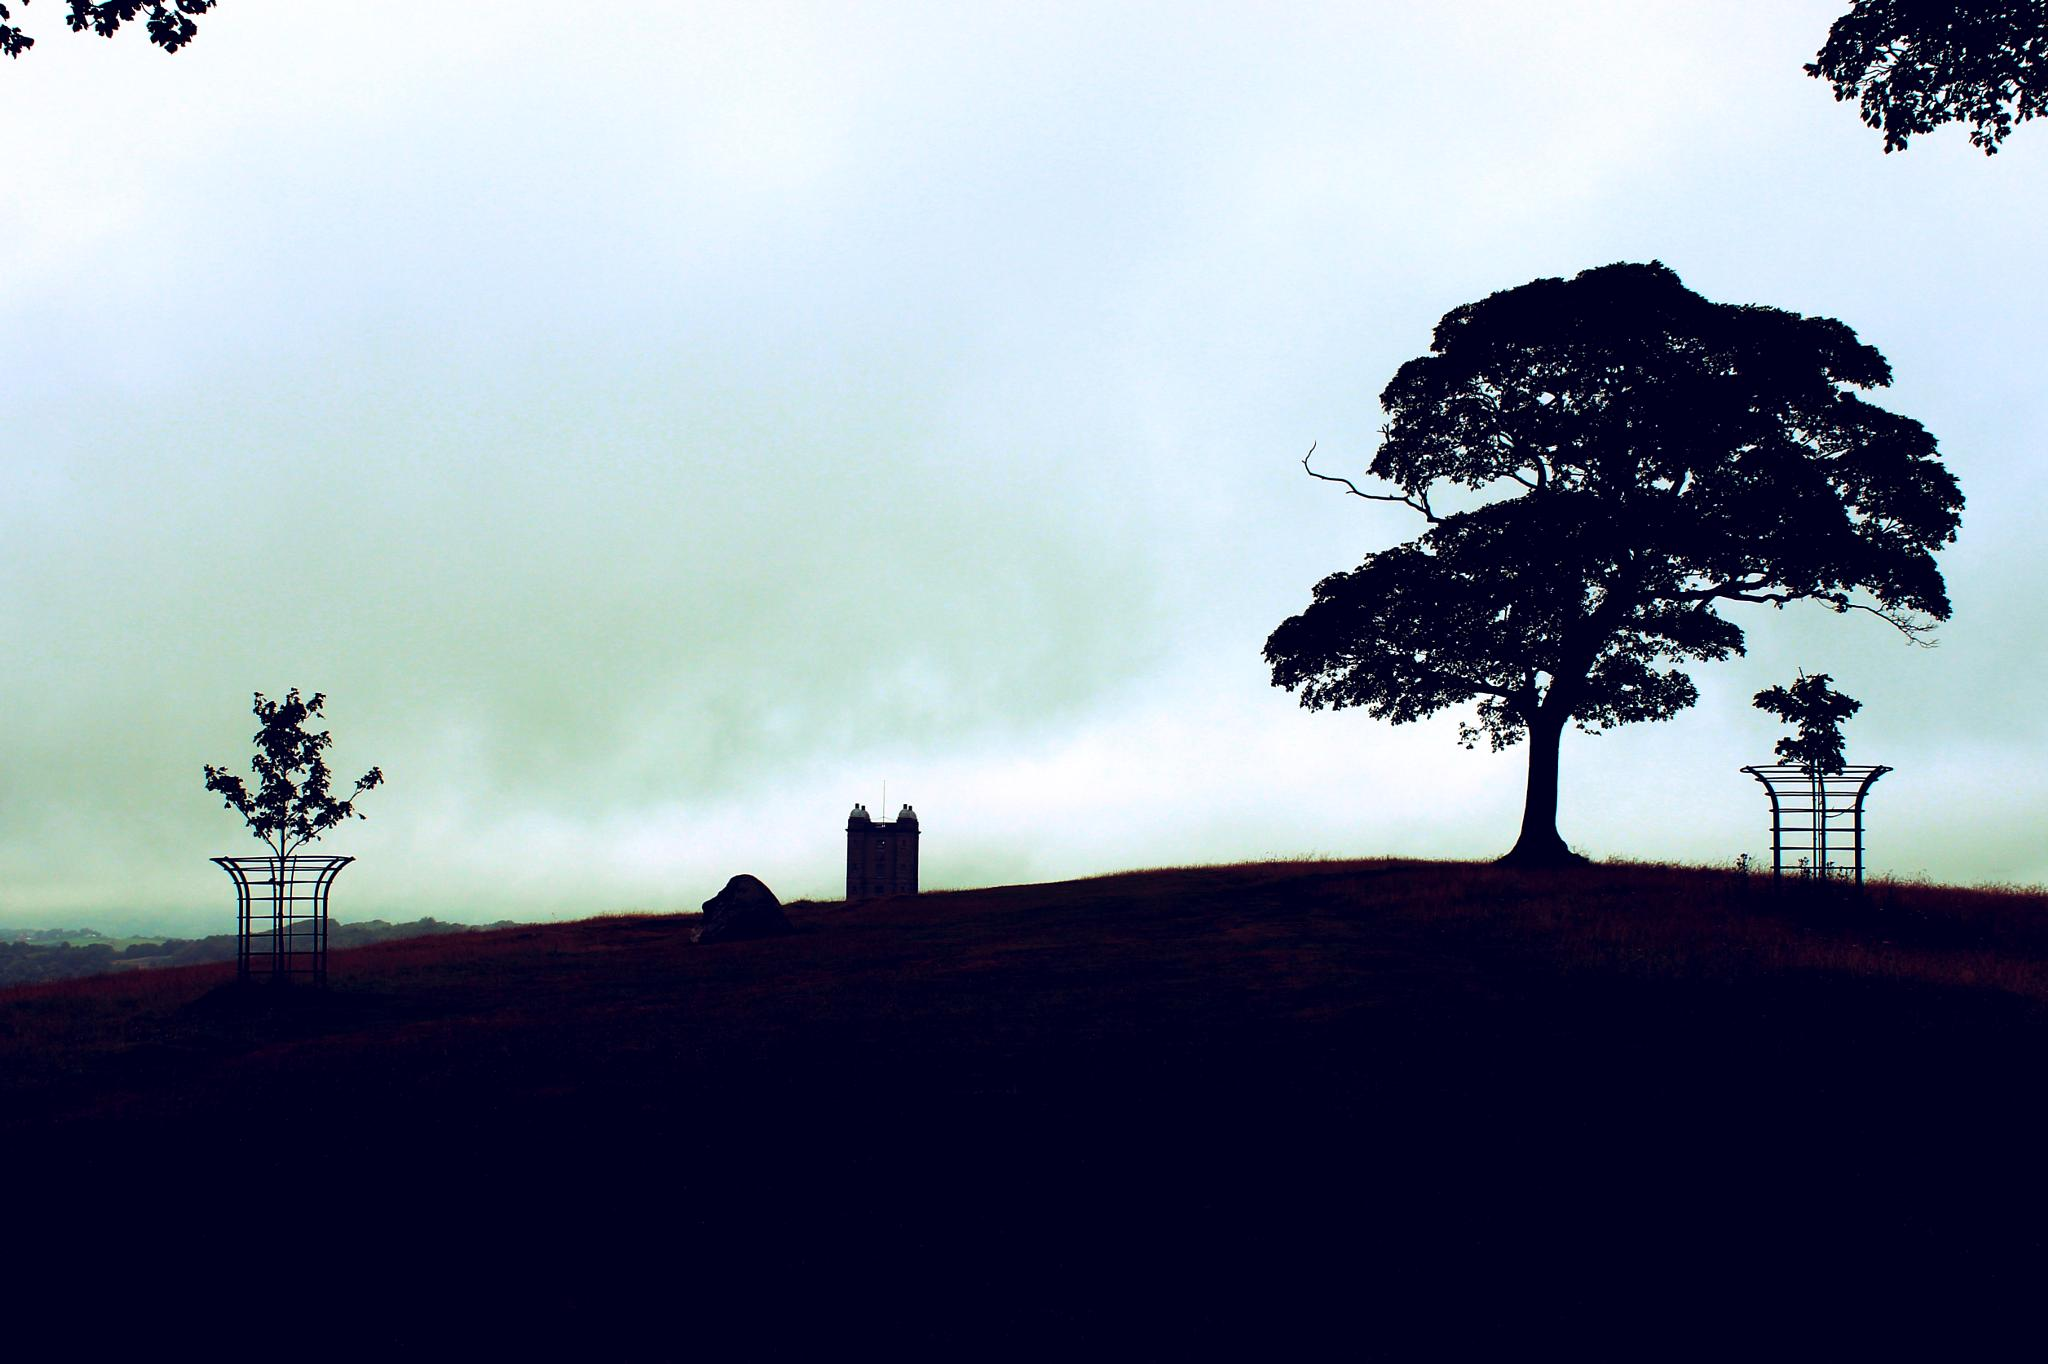 Tree with Tower in mist by Paul Stobbs